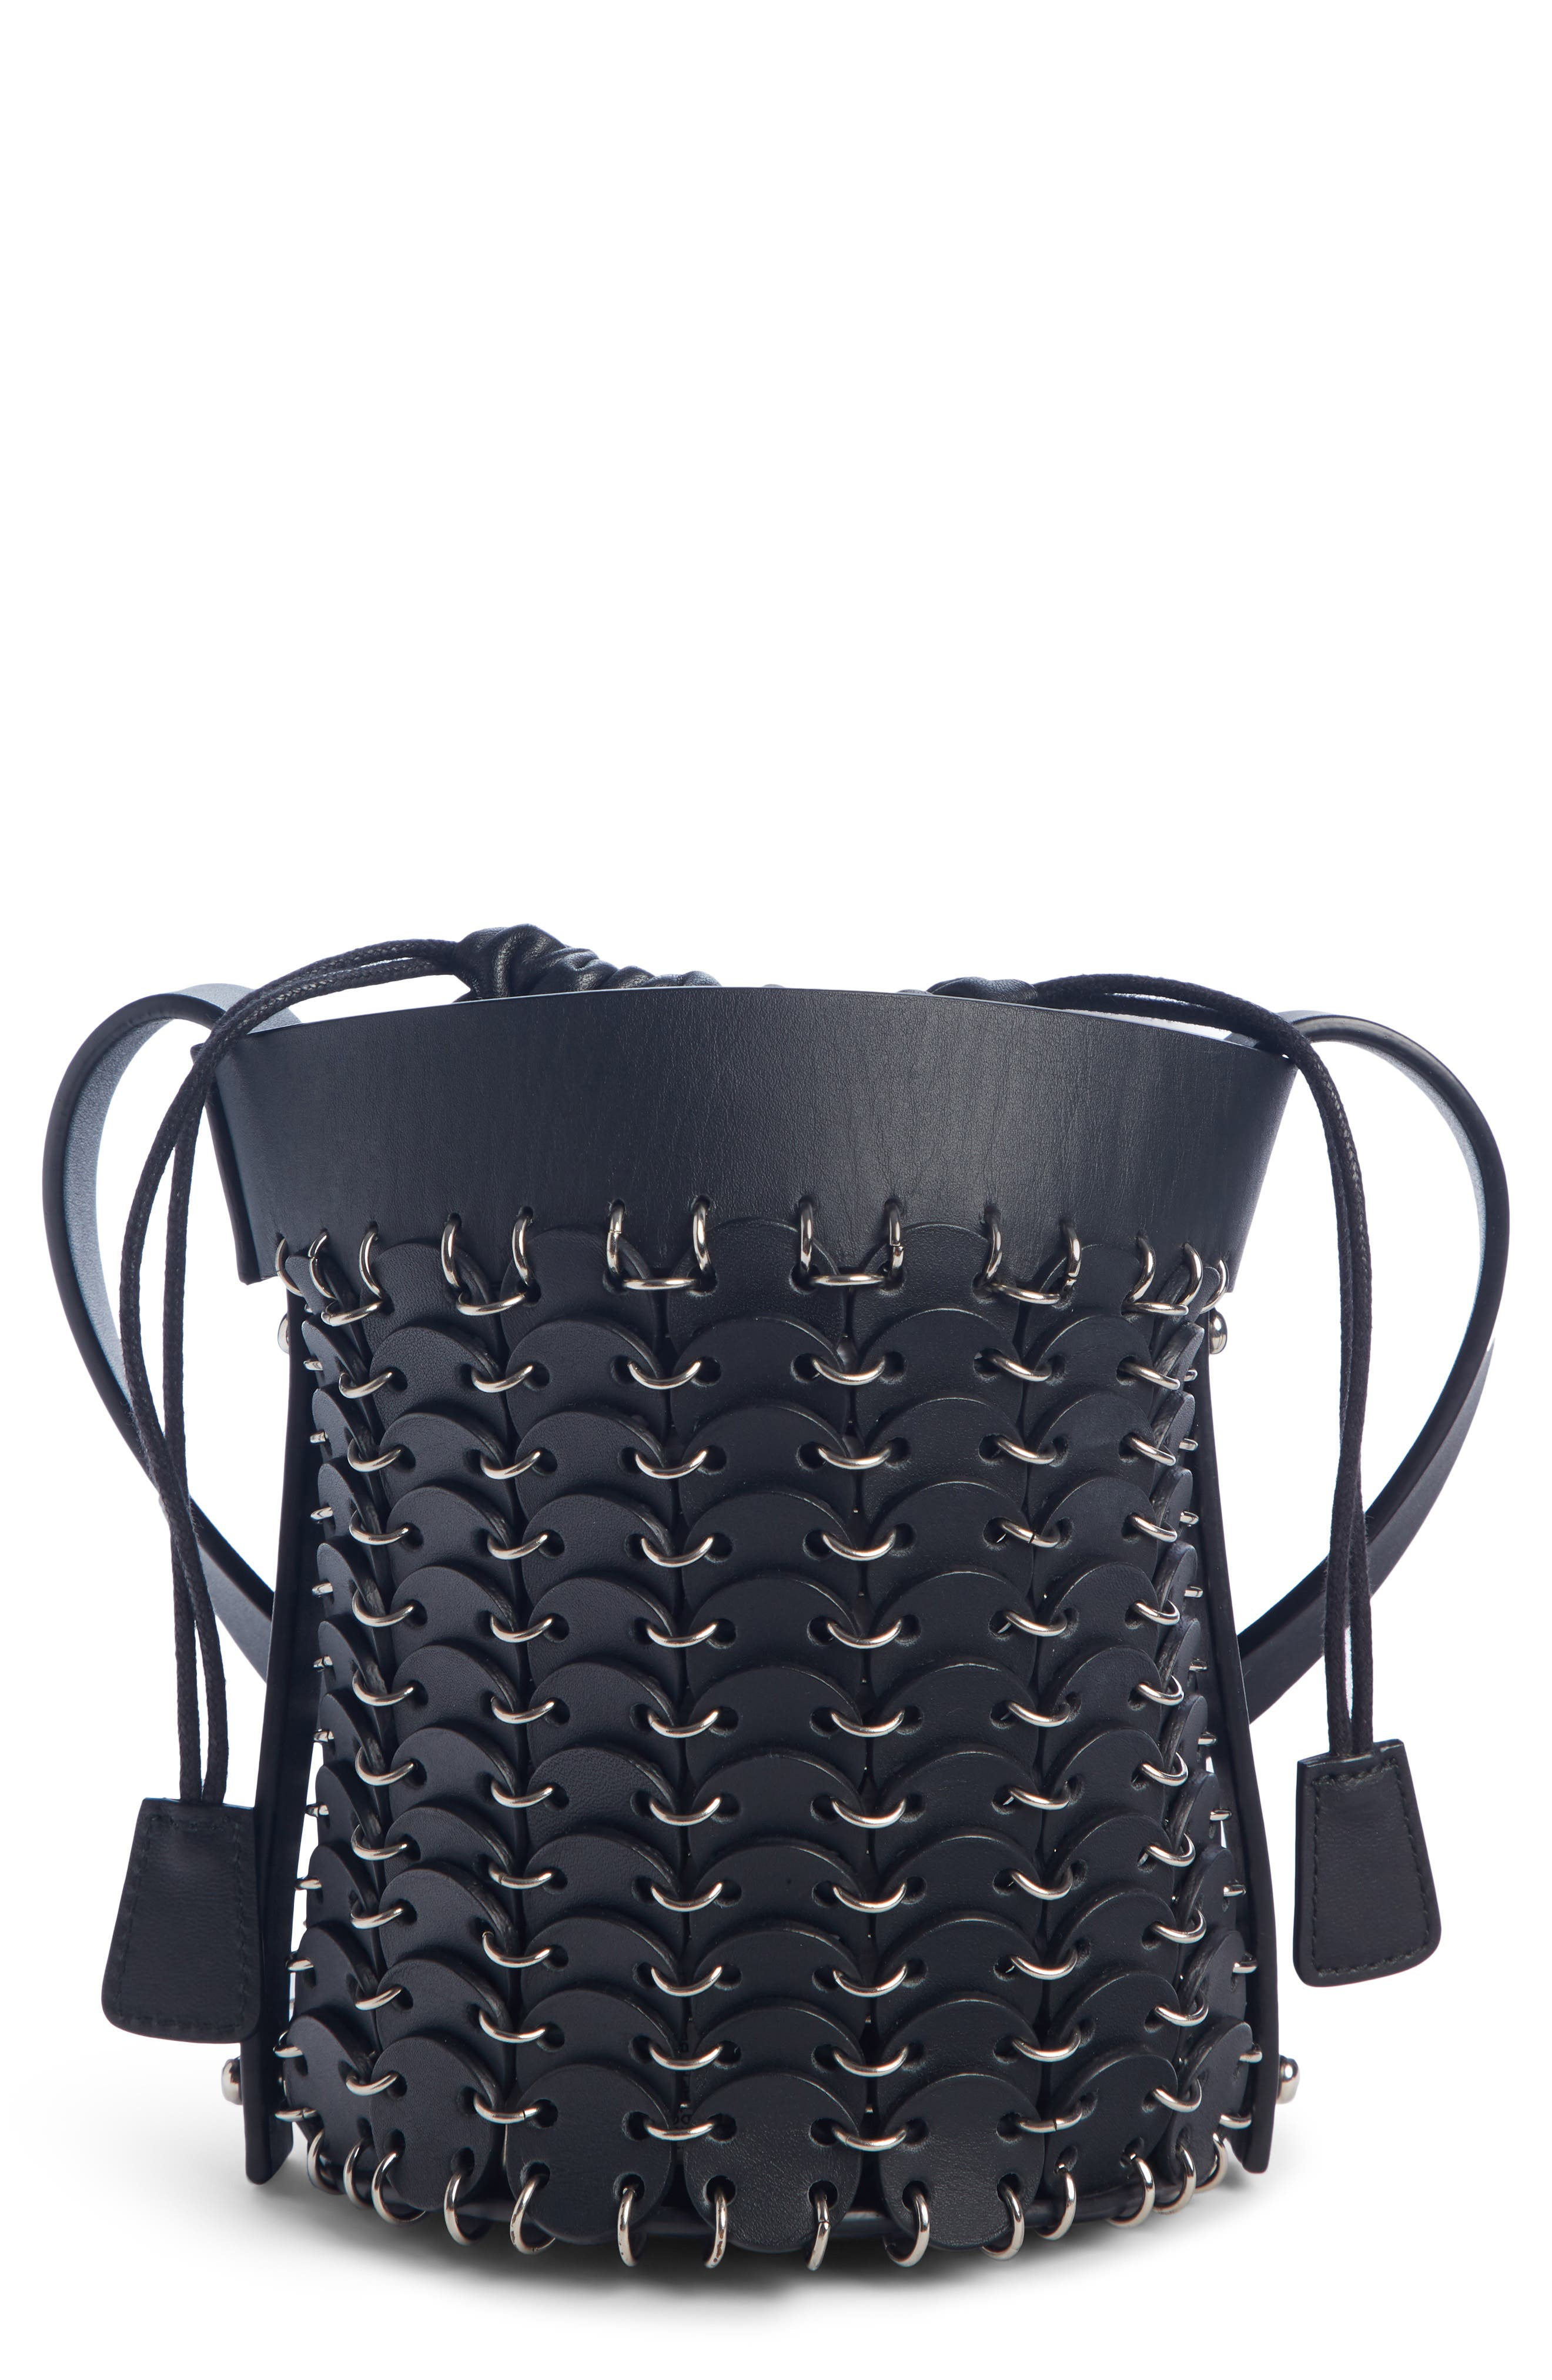 PACO RABANNE,                             Mini Calfskin Bucket Bag,                             Main thumbnail 1, color,                             BLACK